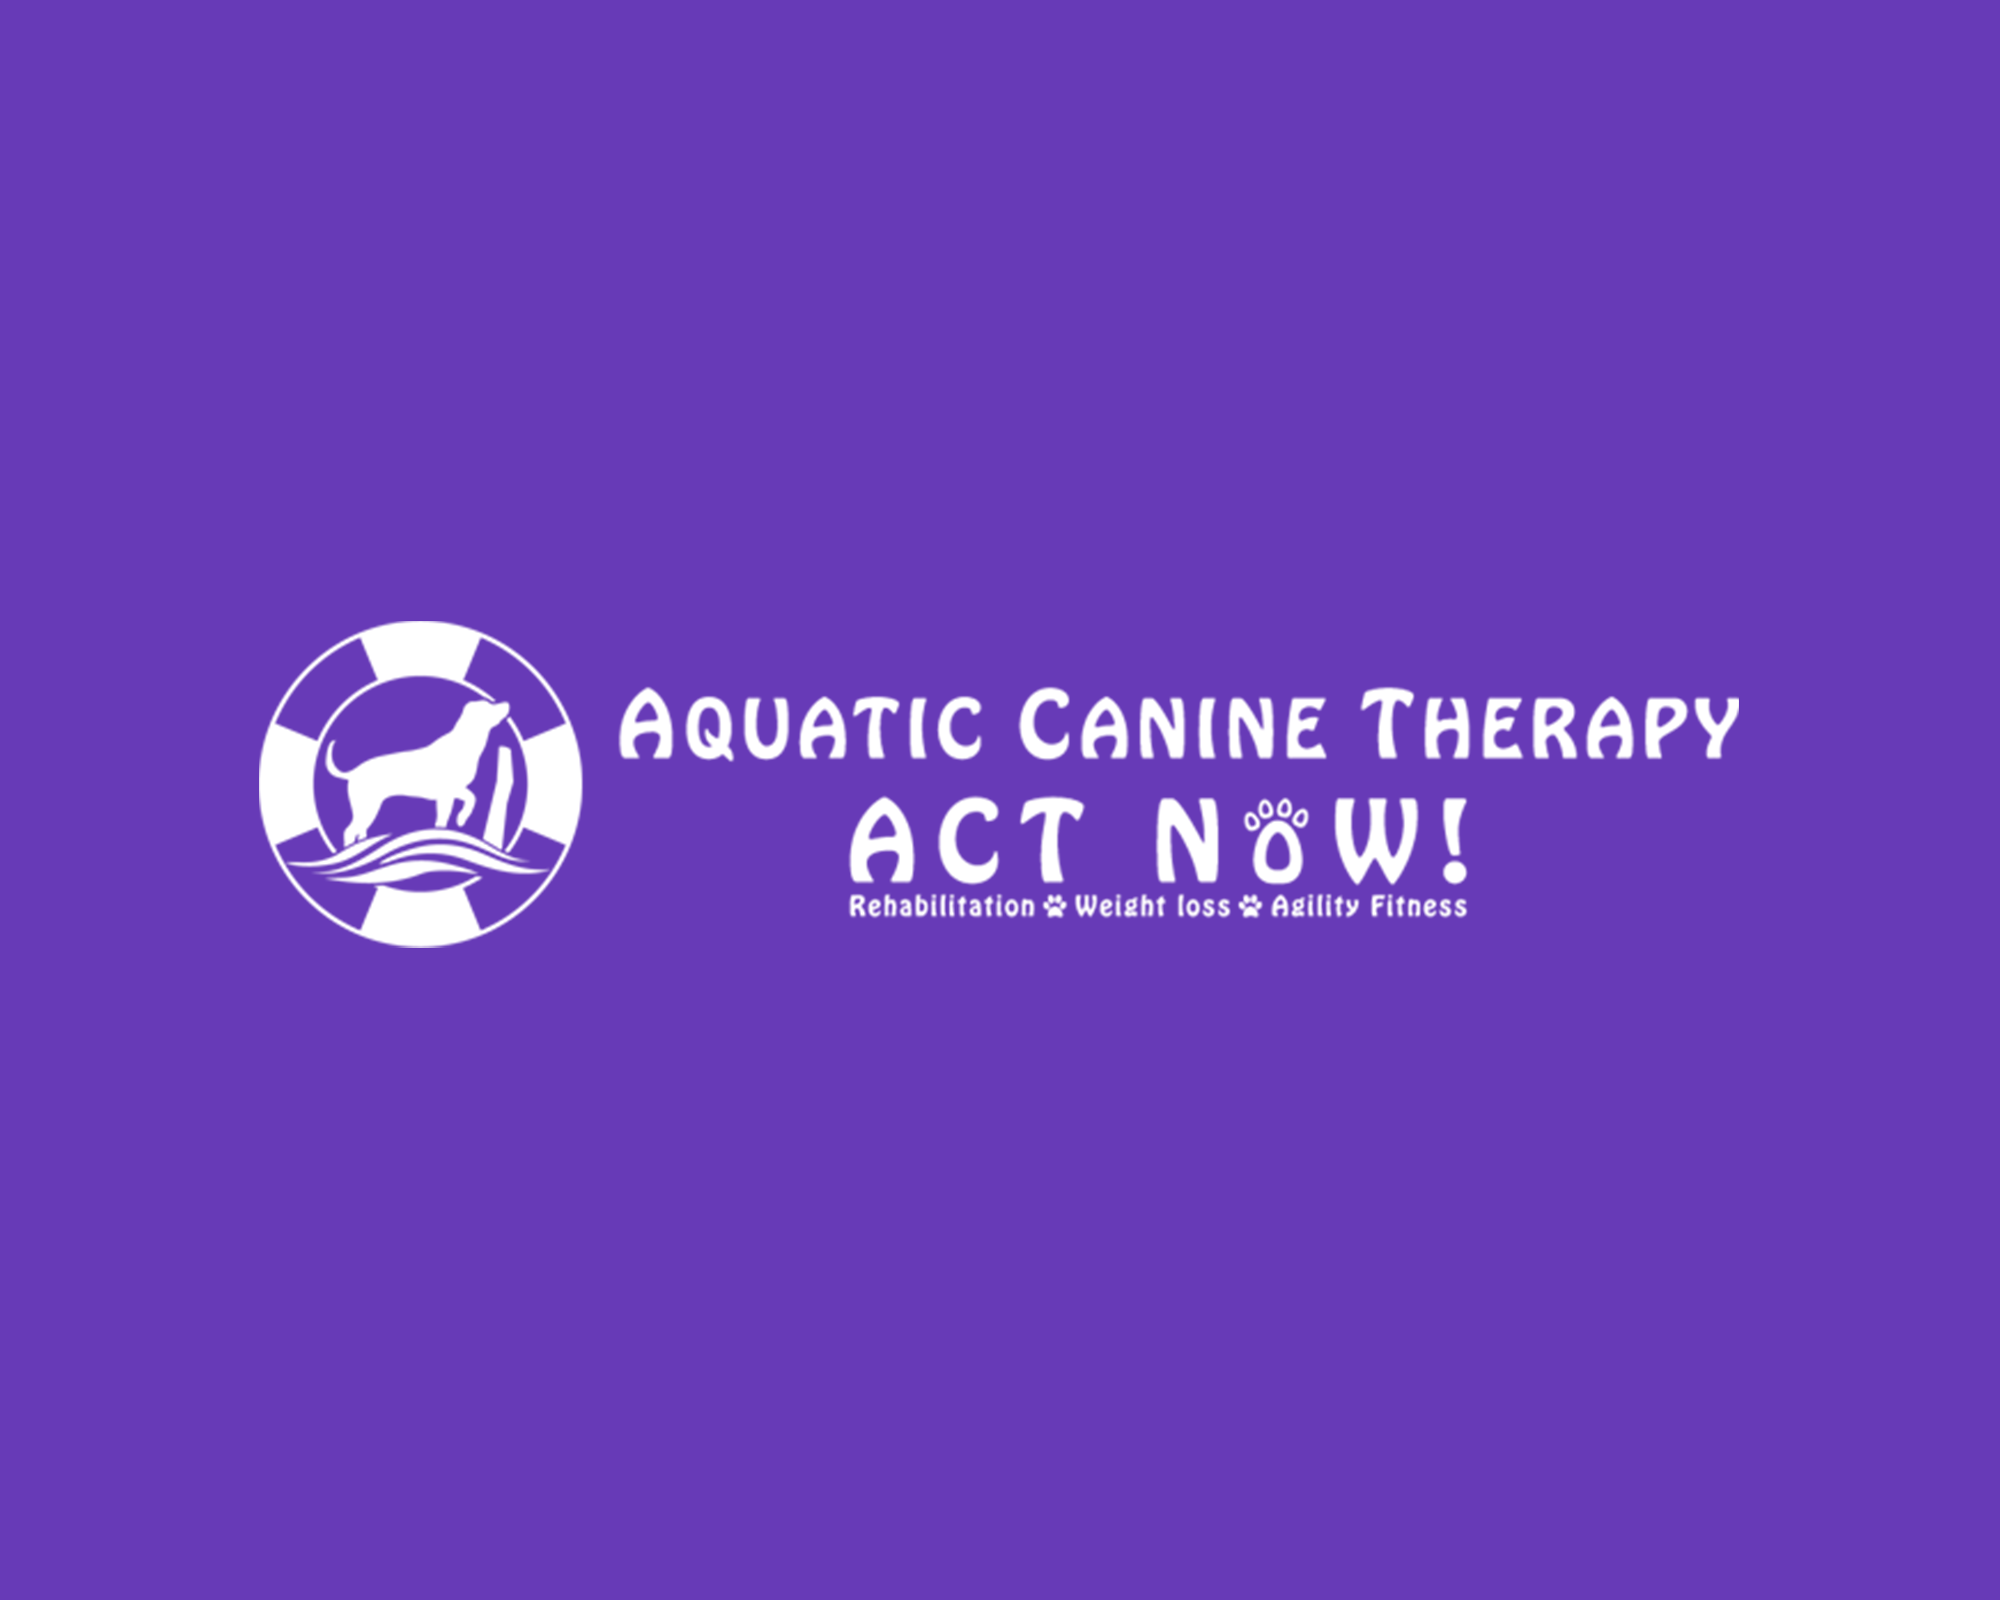 aquatic canine therapy Logo